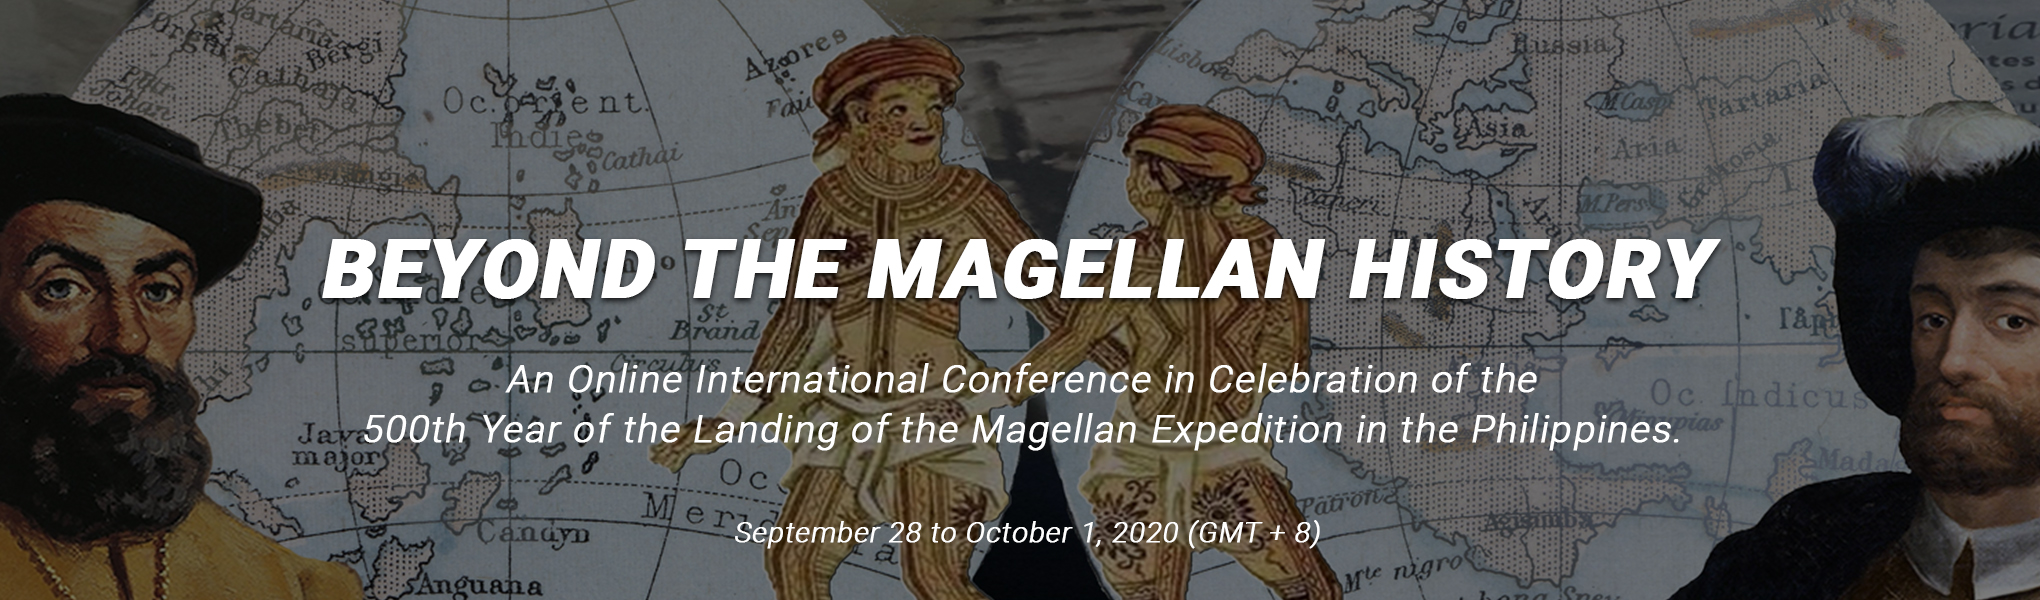 Beyond the Magellan History